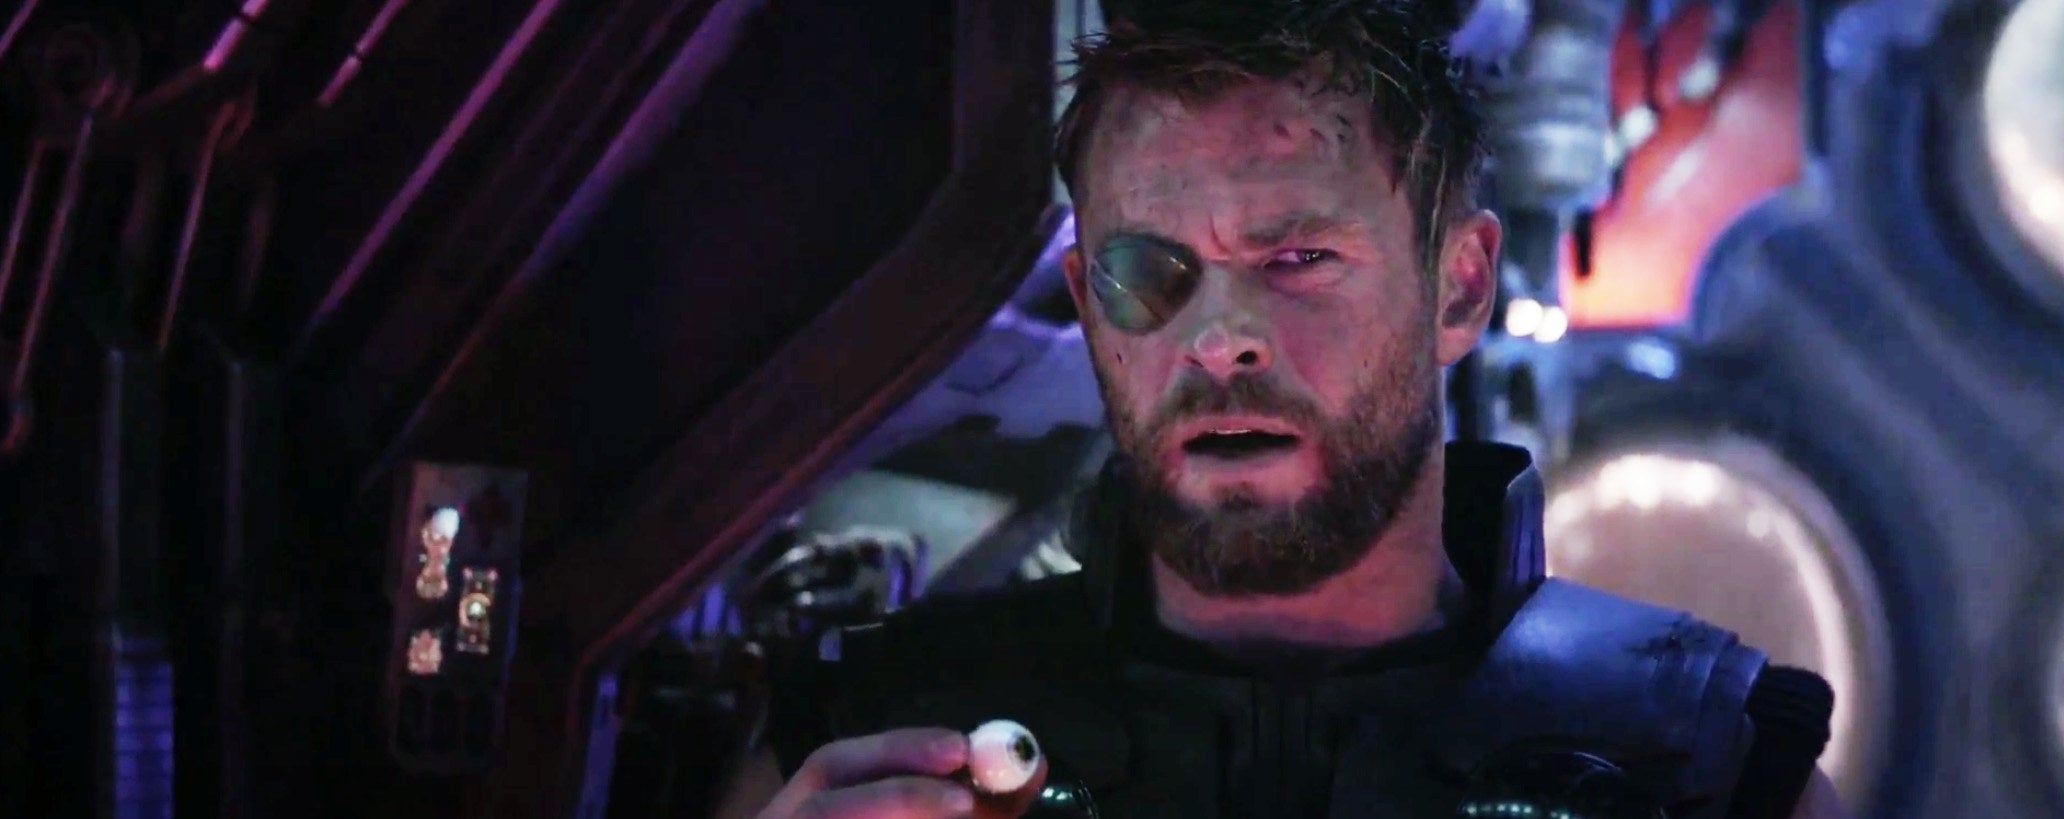 Thor with an eye path on his right eye and holding an eyeball in his hand